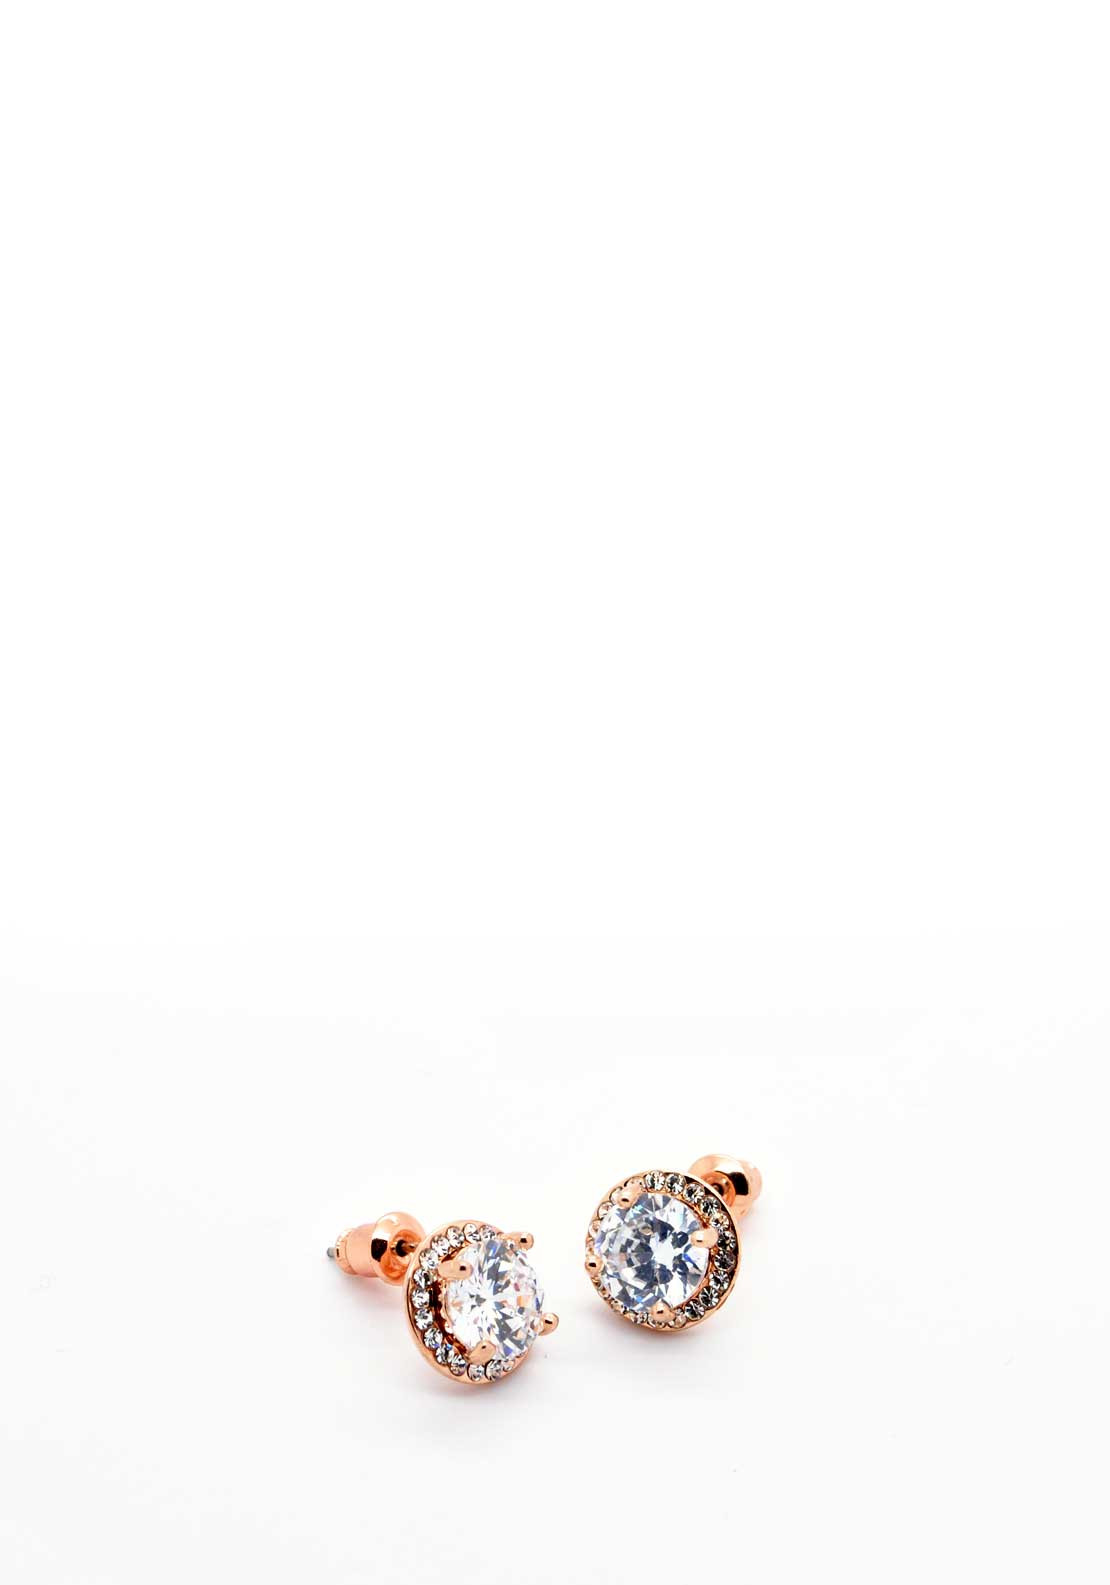 Absolute Jewellery Prong Set Crystal Halo Earrings, Rose Gold